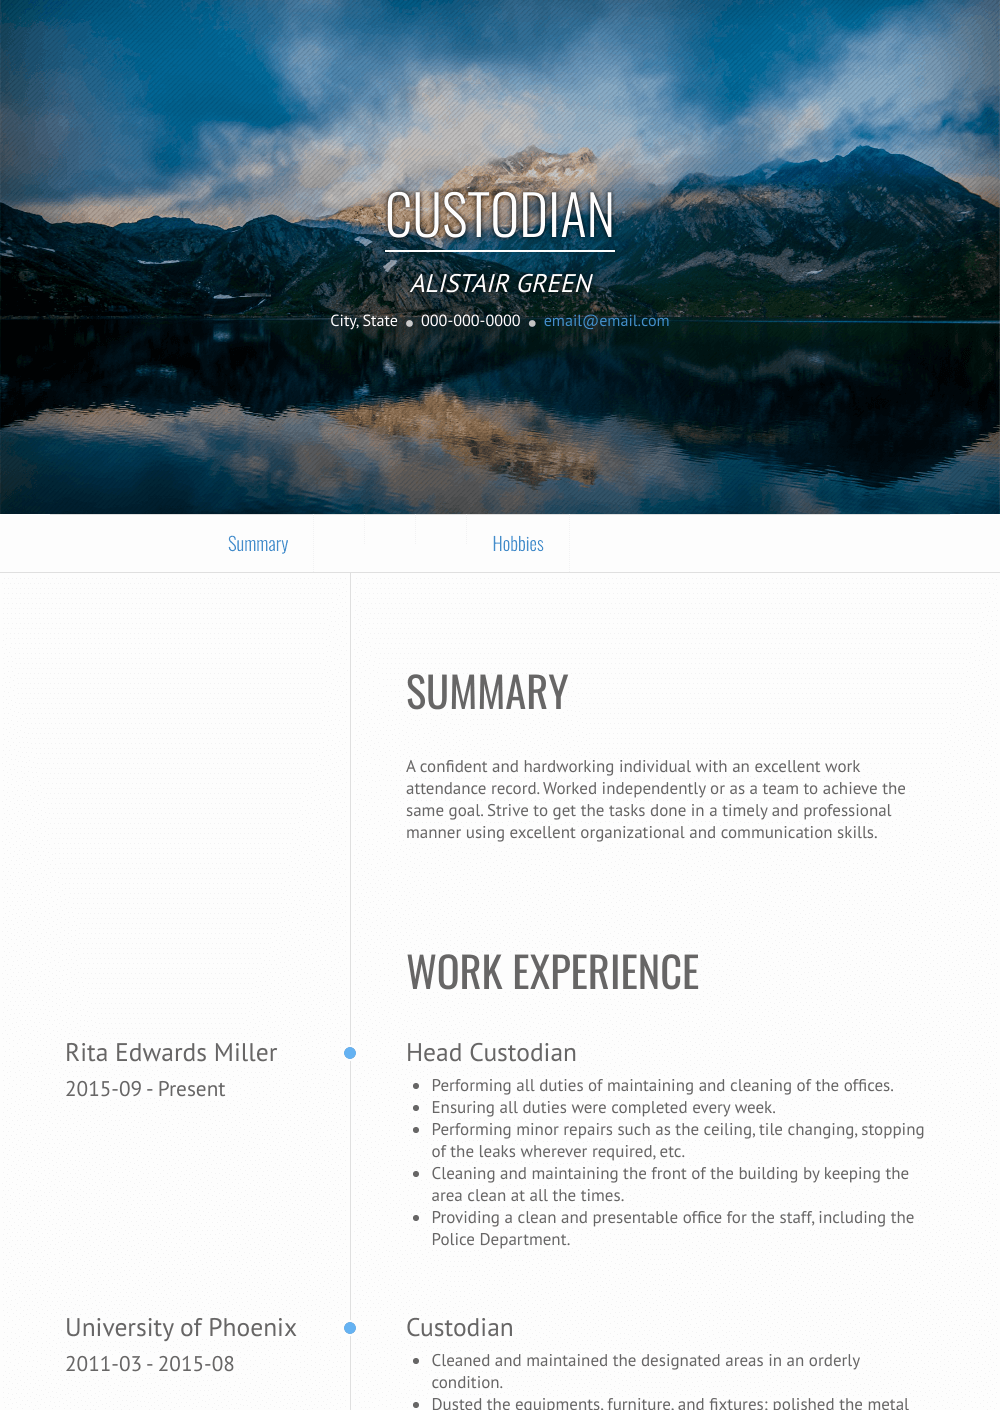 Custodian Resume Sample and Template